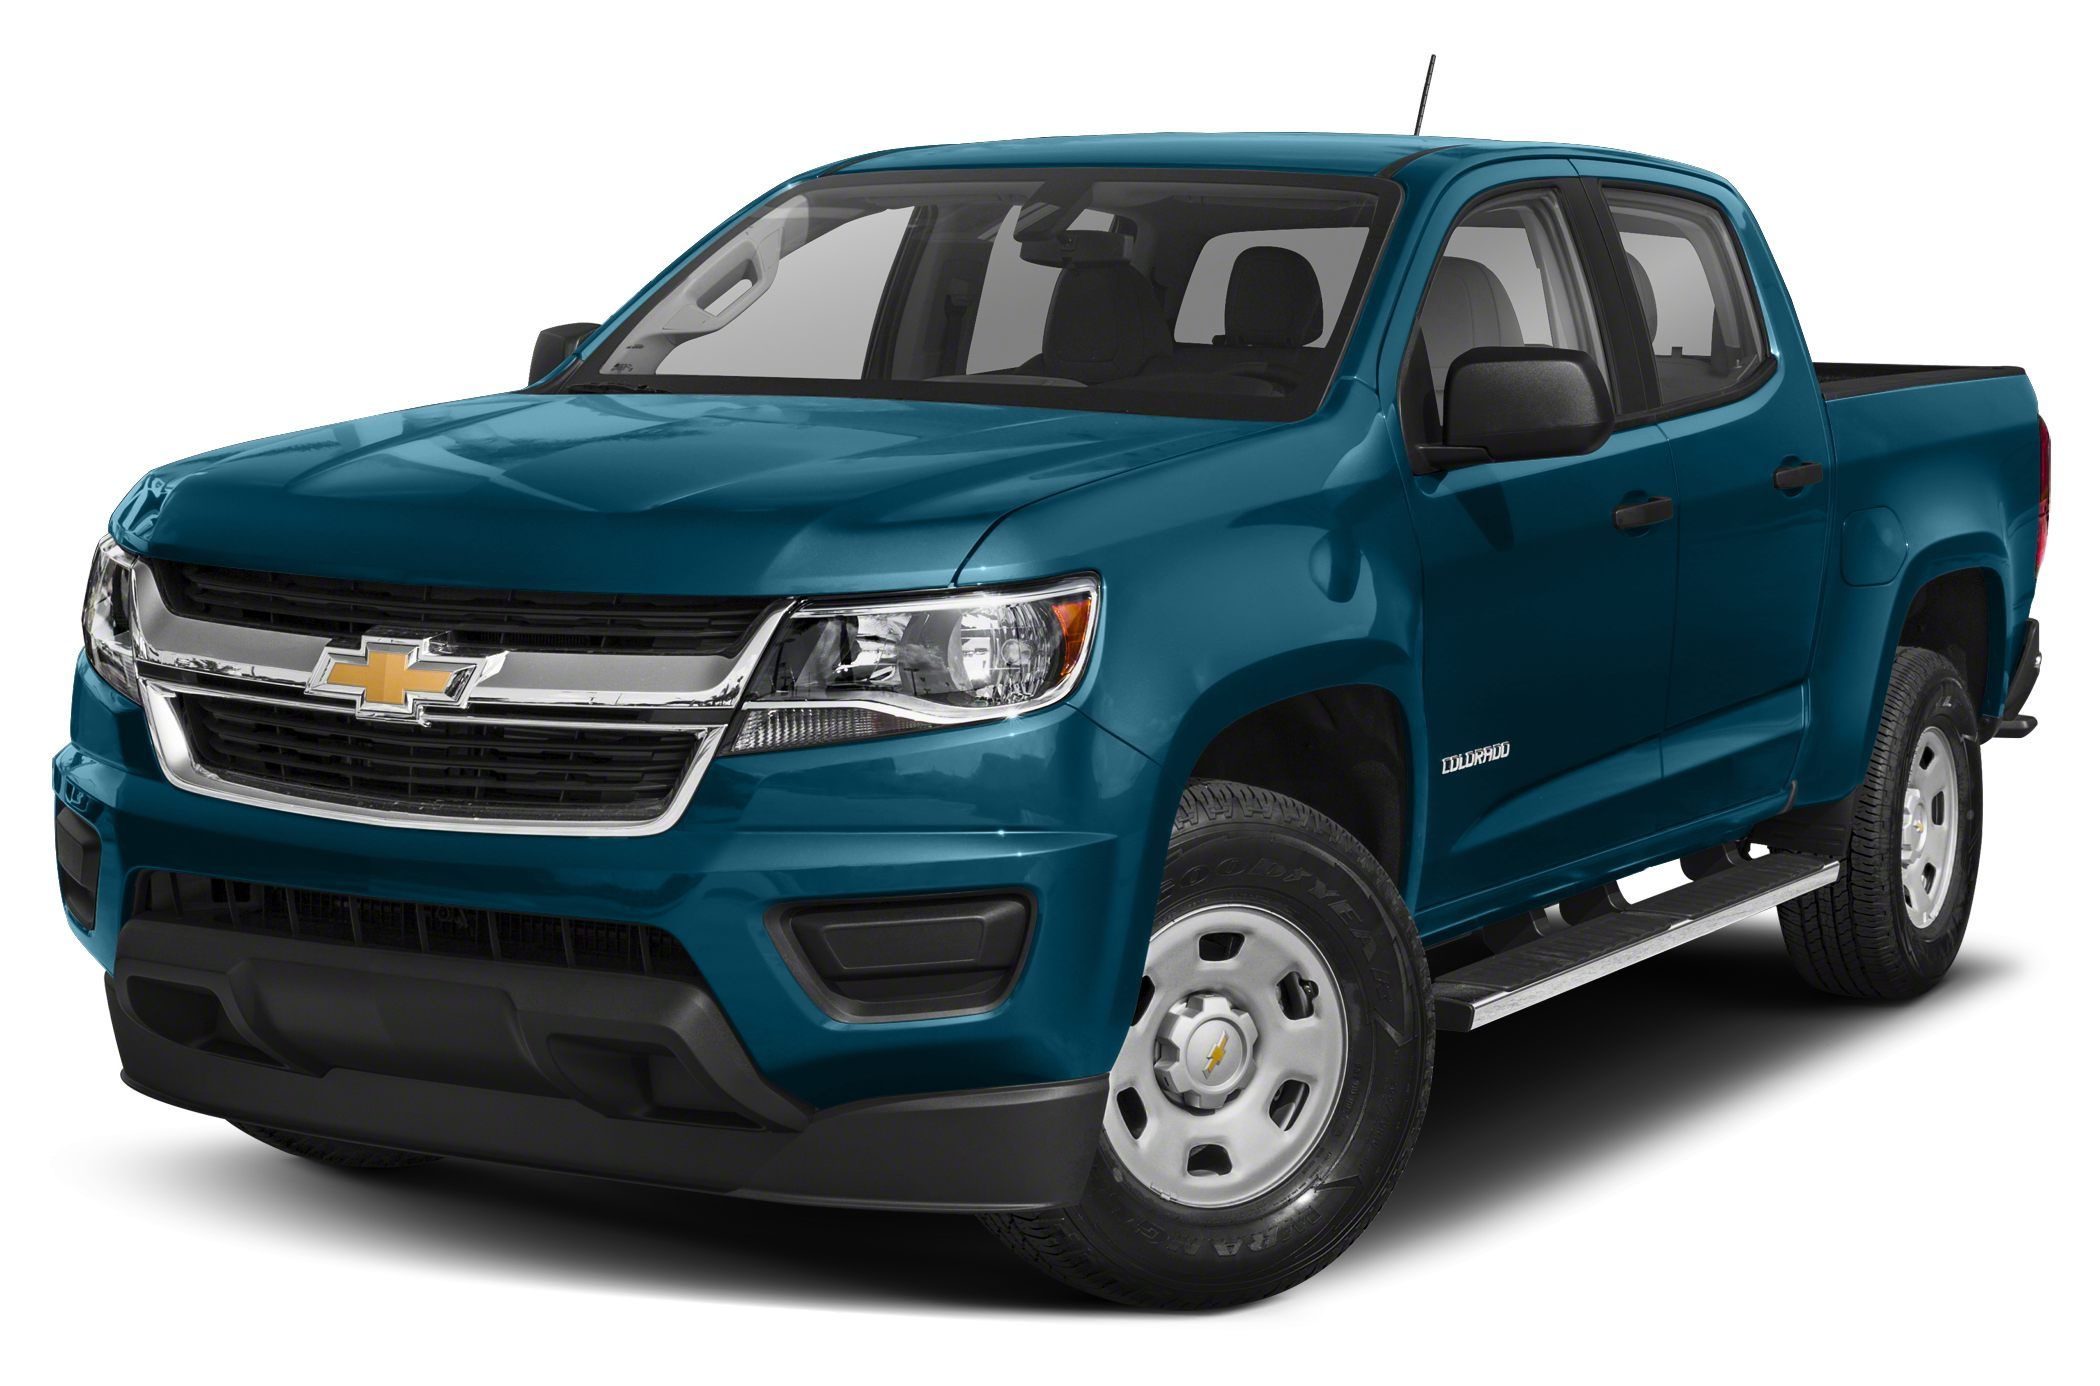 Chevrolet Colorados For Sale In San Jose Ca Under 4 000 Miles Chevrolet Colorado Chevy Colorado Chevrolet